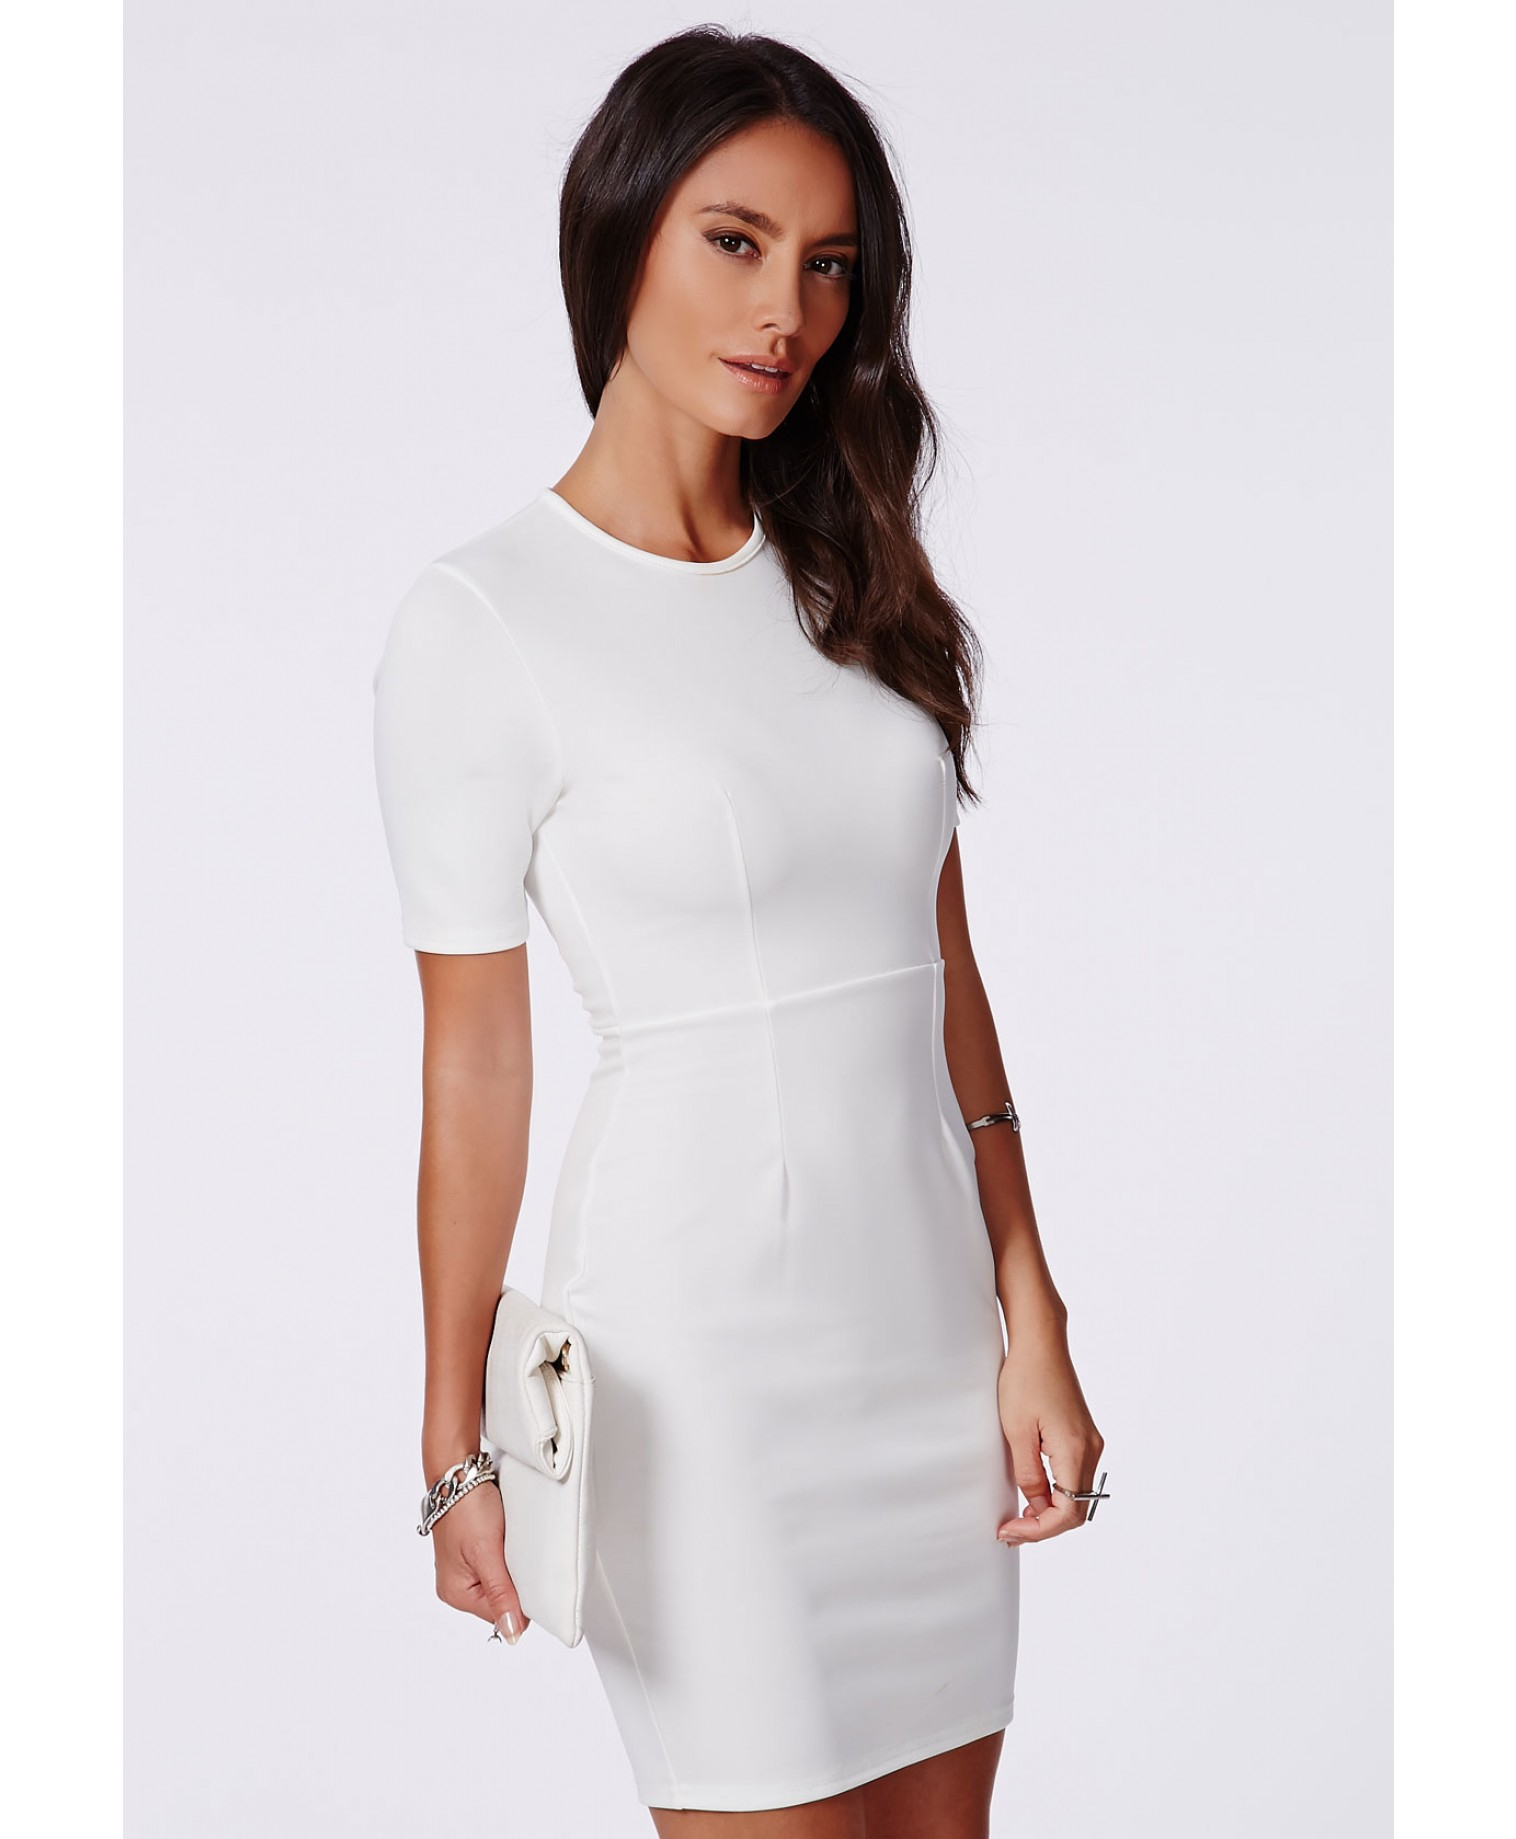 Missguided Aushi White Fitted Bodycon Mini Dress In White